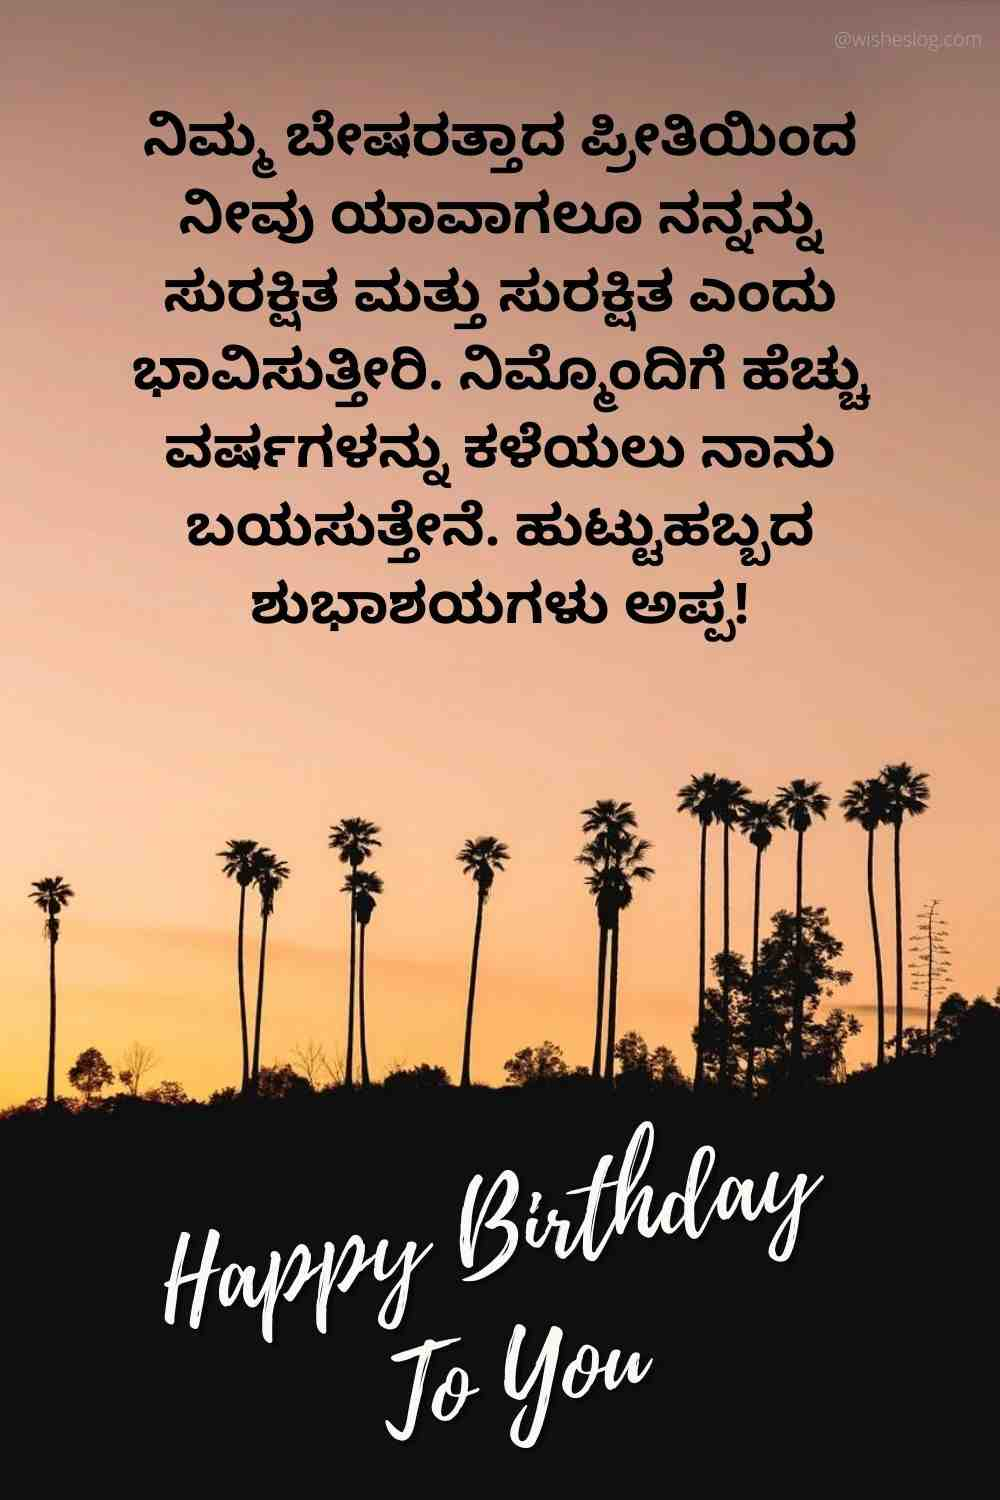 father birthday wishes in kannada